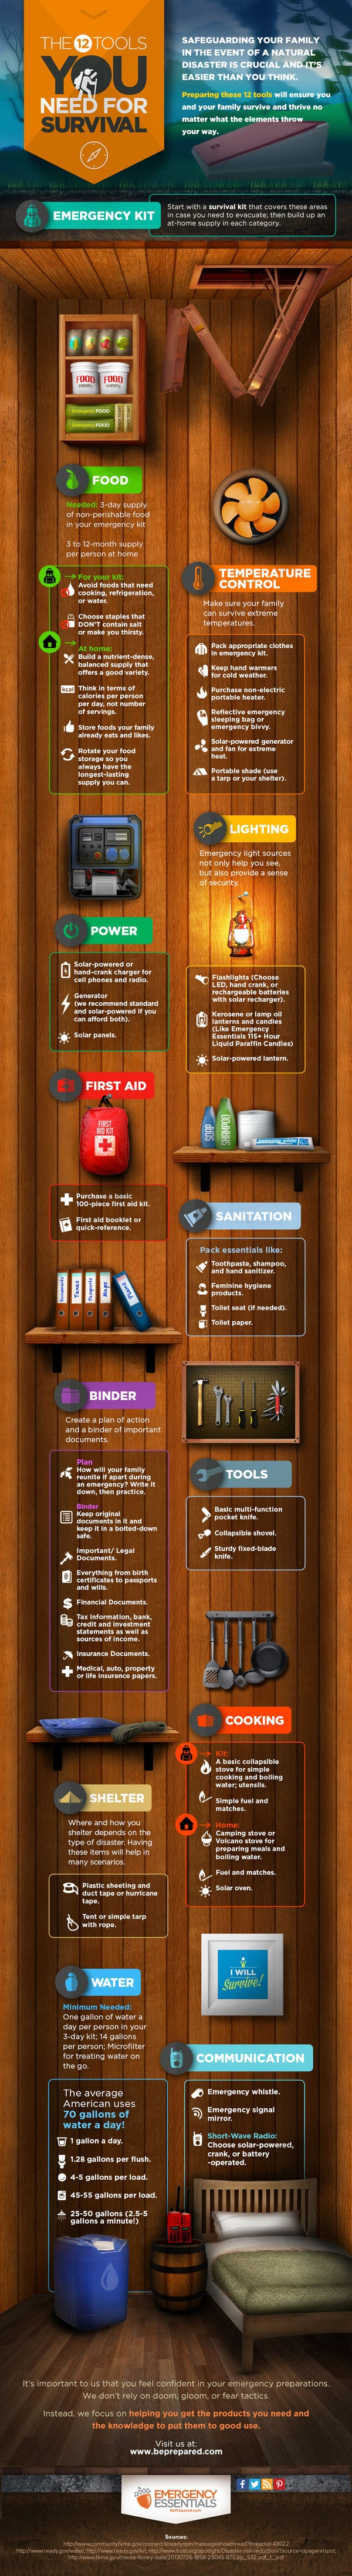 Infographic: 12 Tools You Need for Survival in Any Emergency